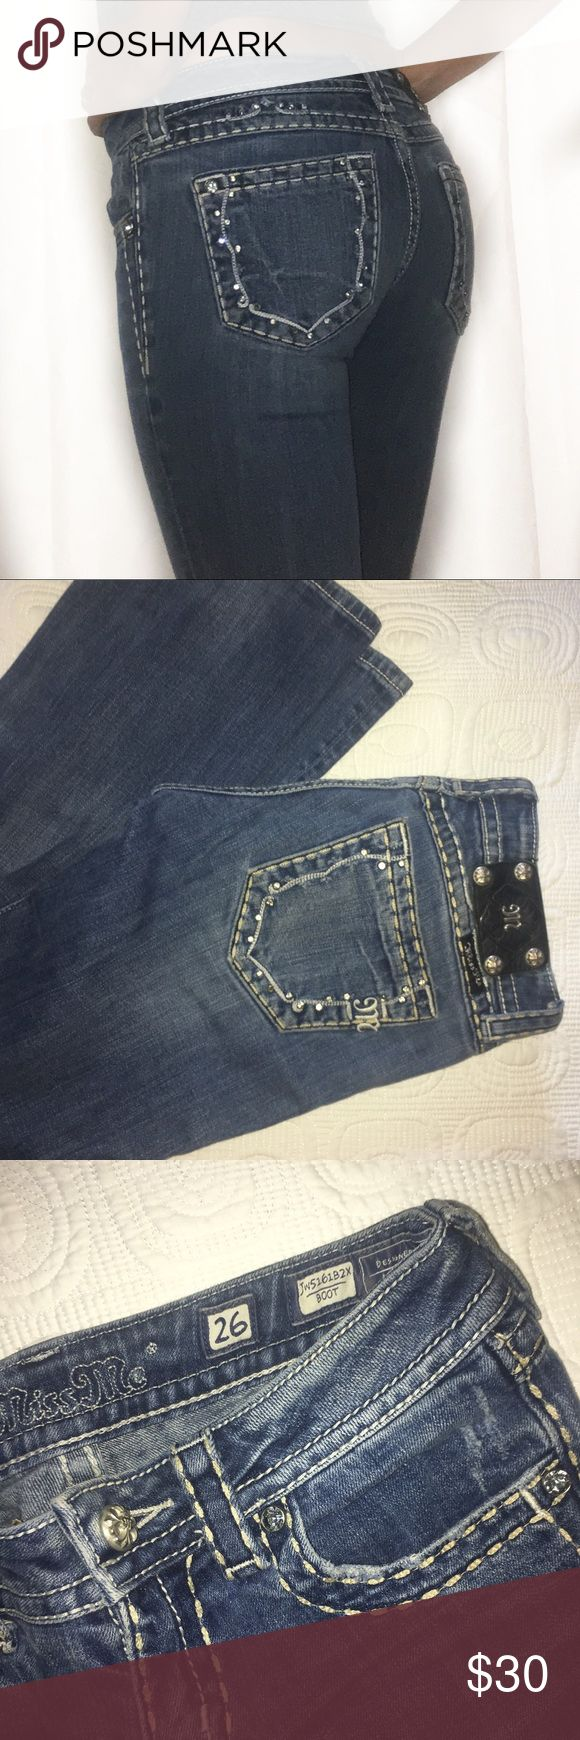 Miss Me jeans Miss Me brand boot cut jeans. Pretty good condition, but can tell hey have been worn. Size 26. Few gems are missing on the back pockets. Miss Me Jeans Boot Cut